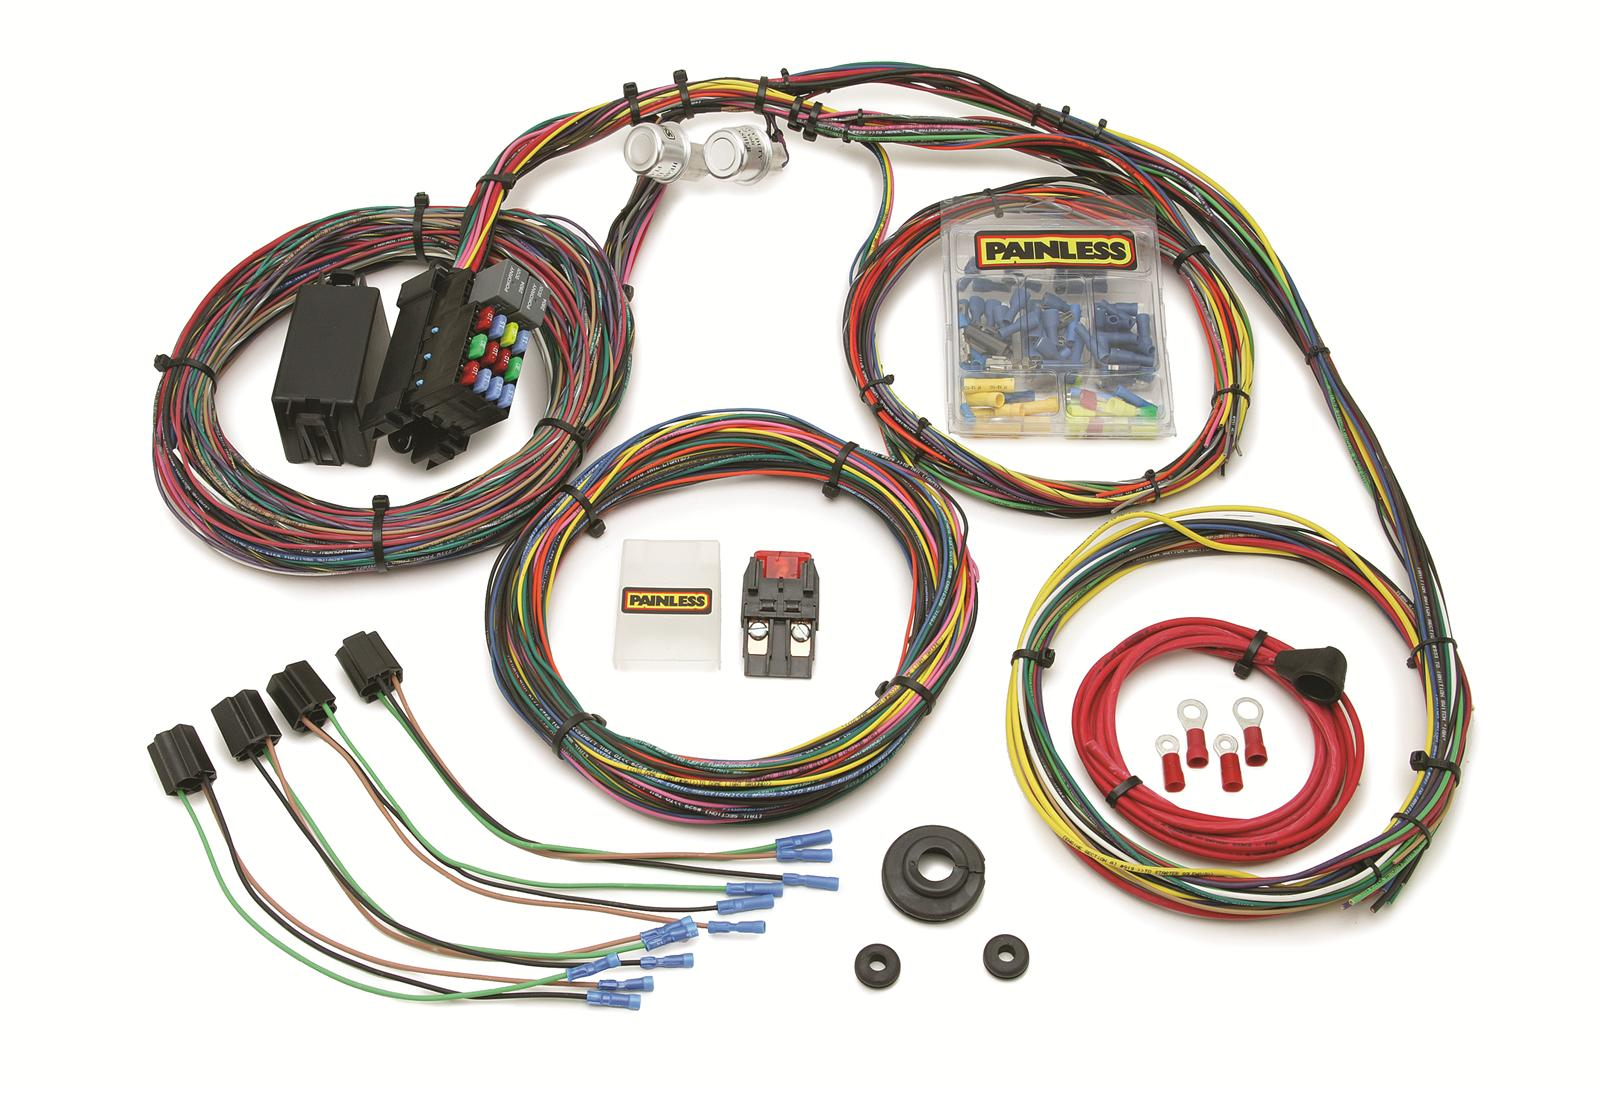 painless performance 21 circuit mopar color coded universal painless wiring harness